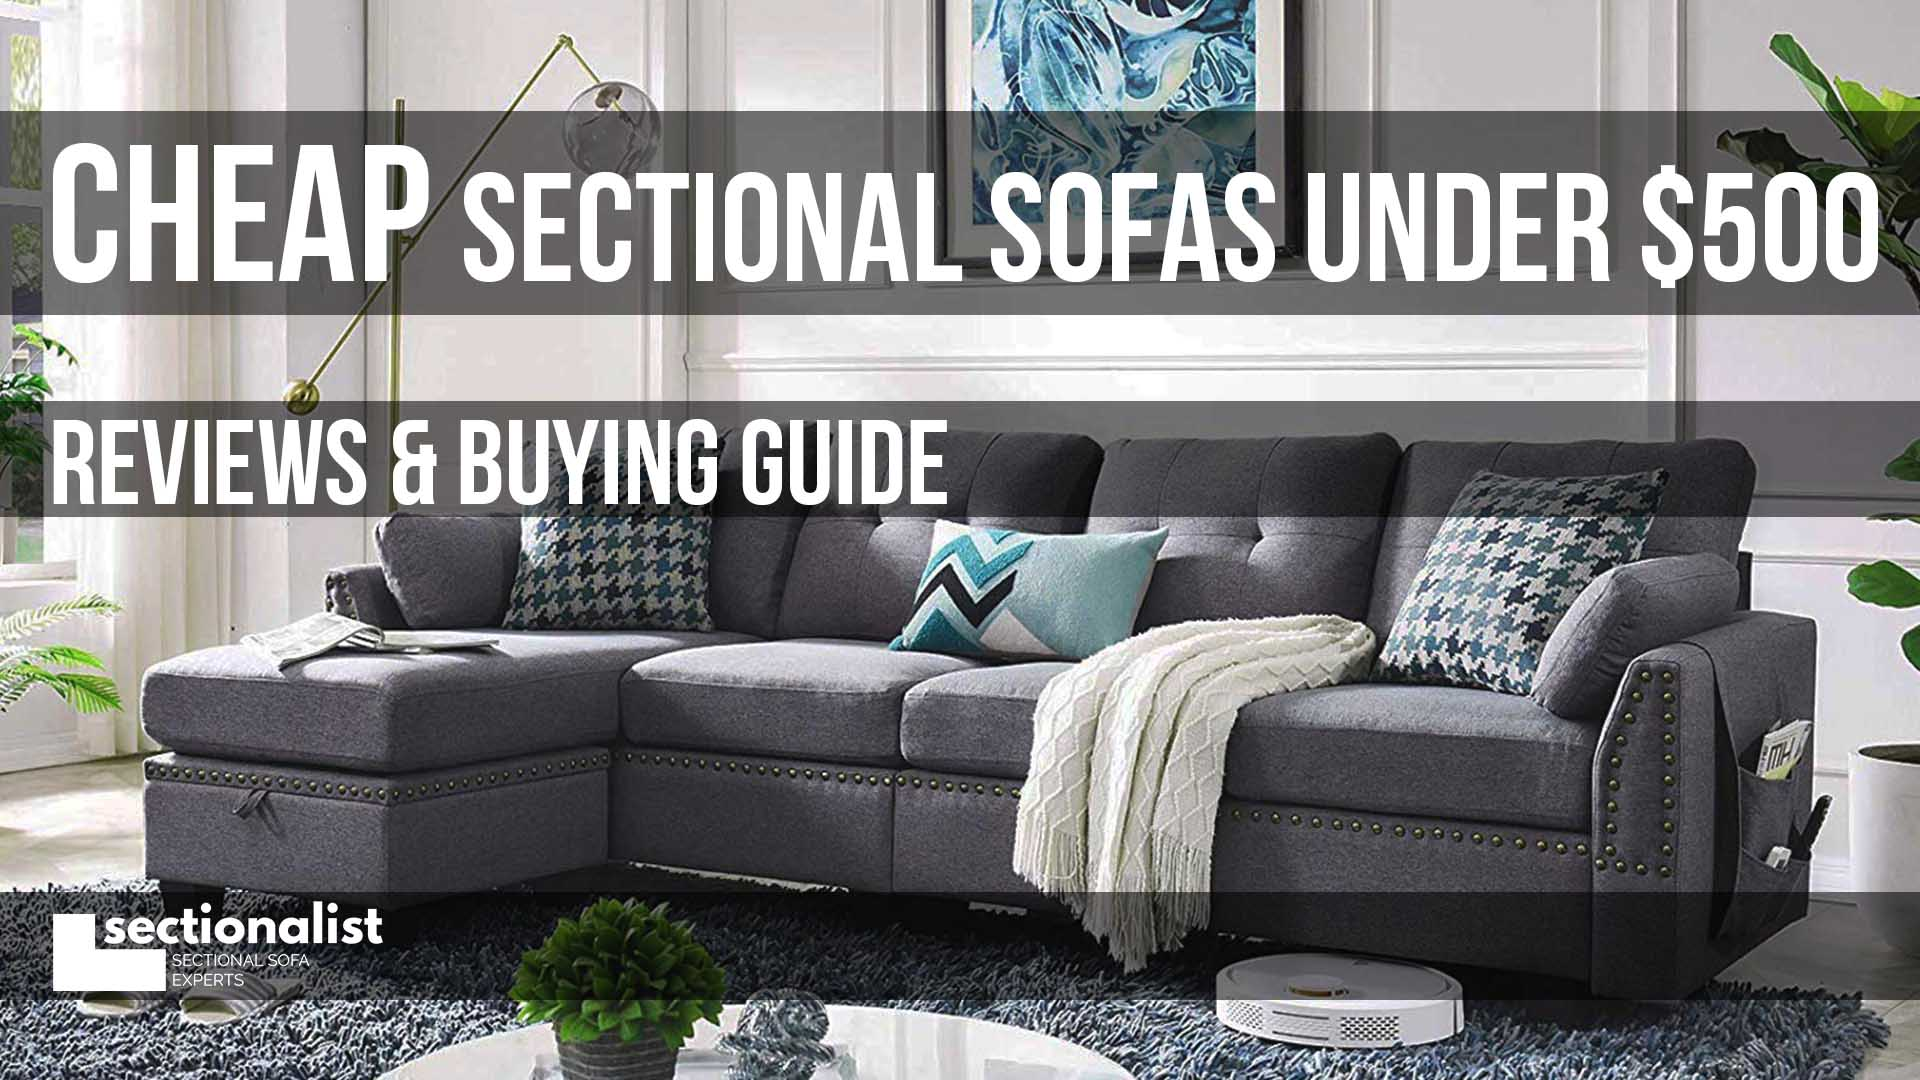 Cheap Sectional Sofas Under 500 Reviews Guide 2020 Sectionalist